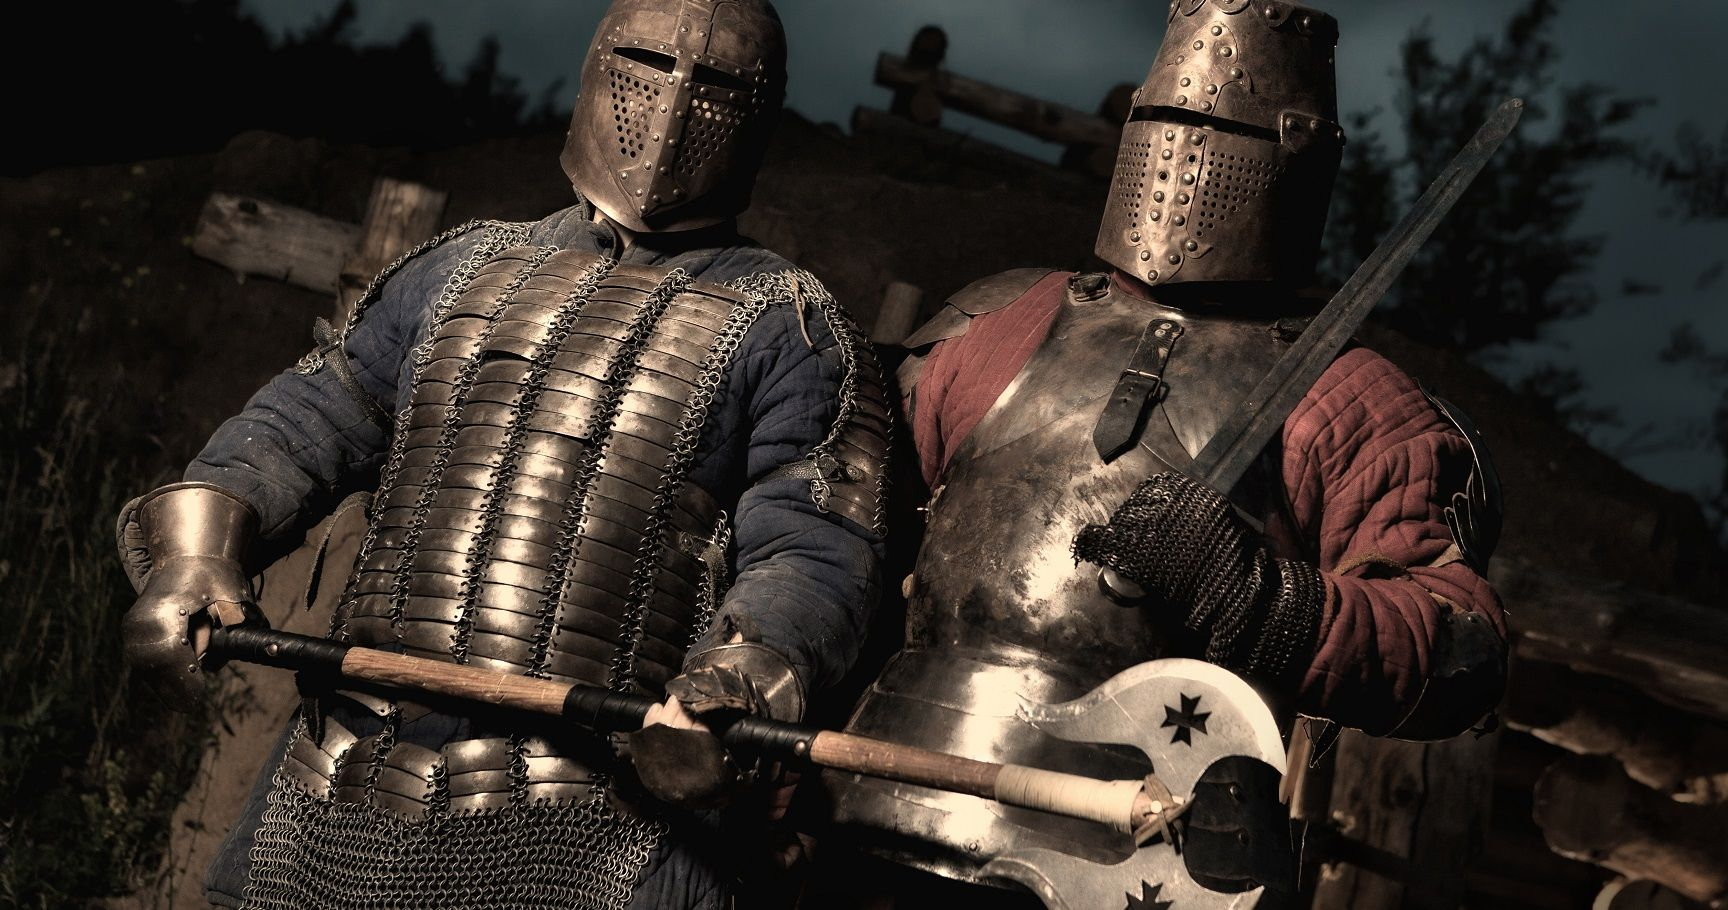 11 of the Most Shockingly Barbaric Medieval Weapons